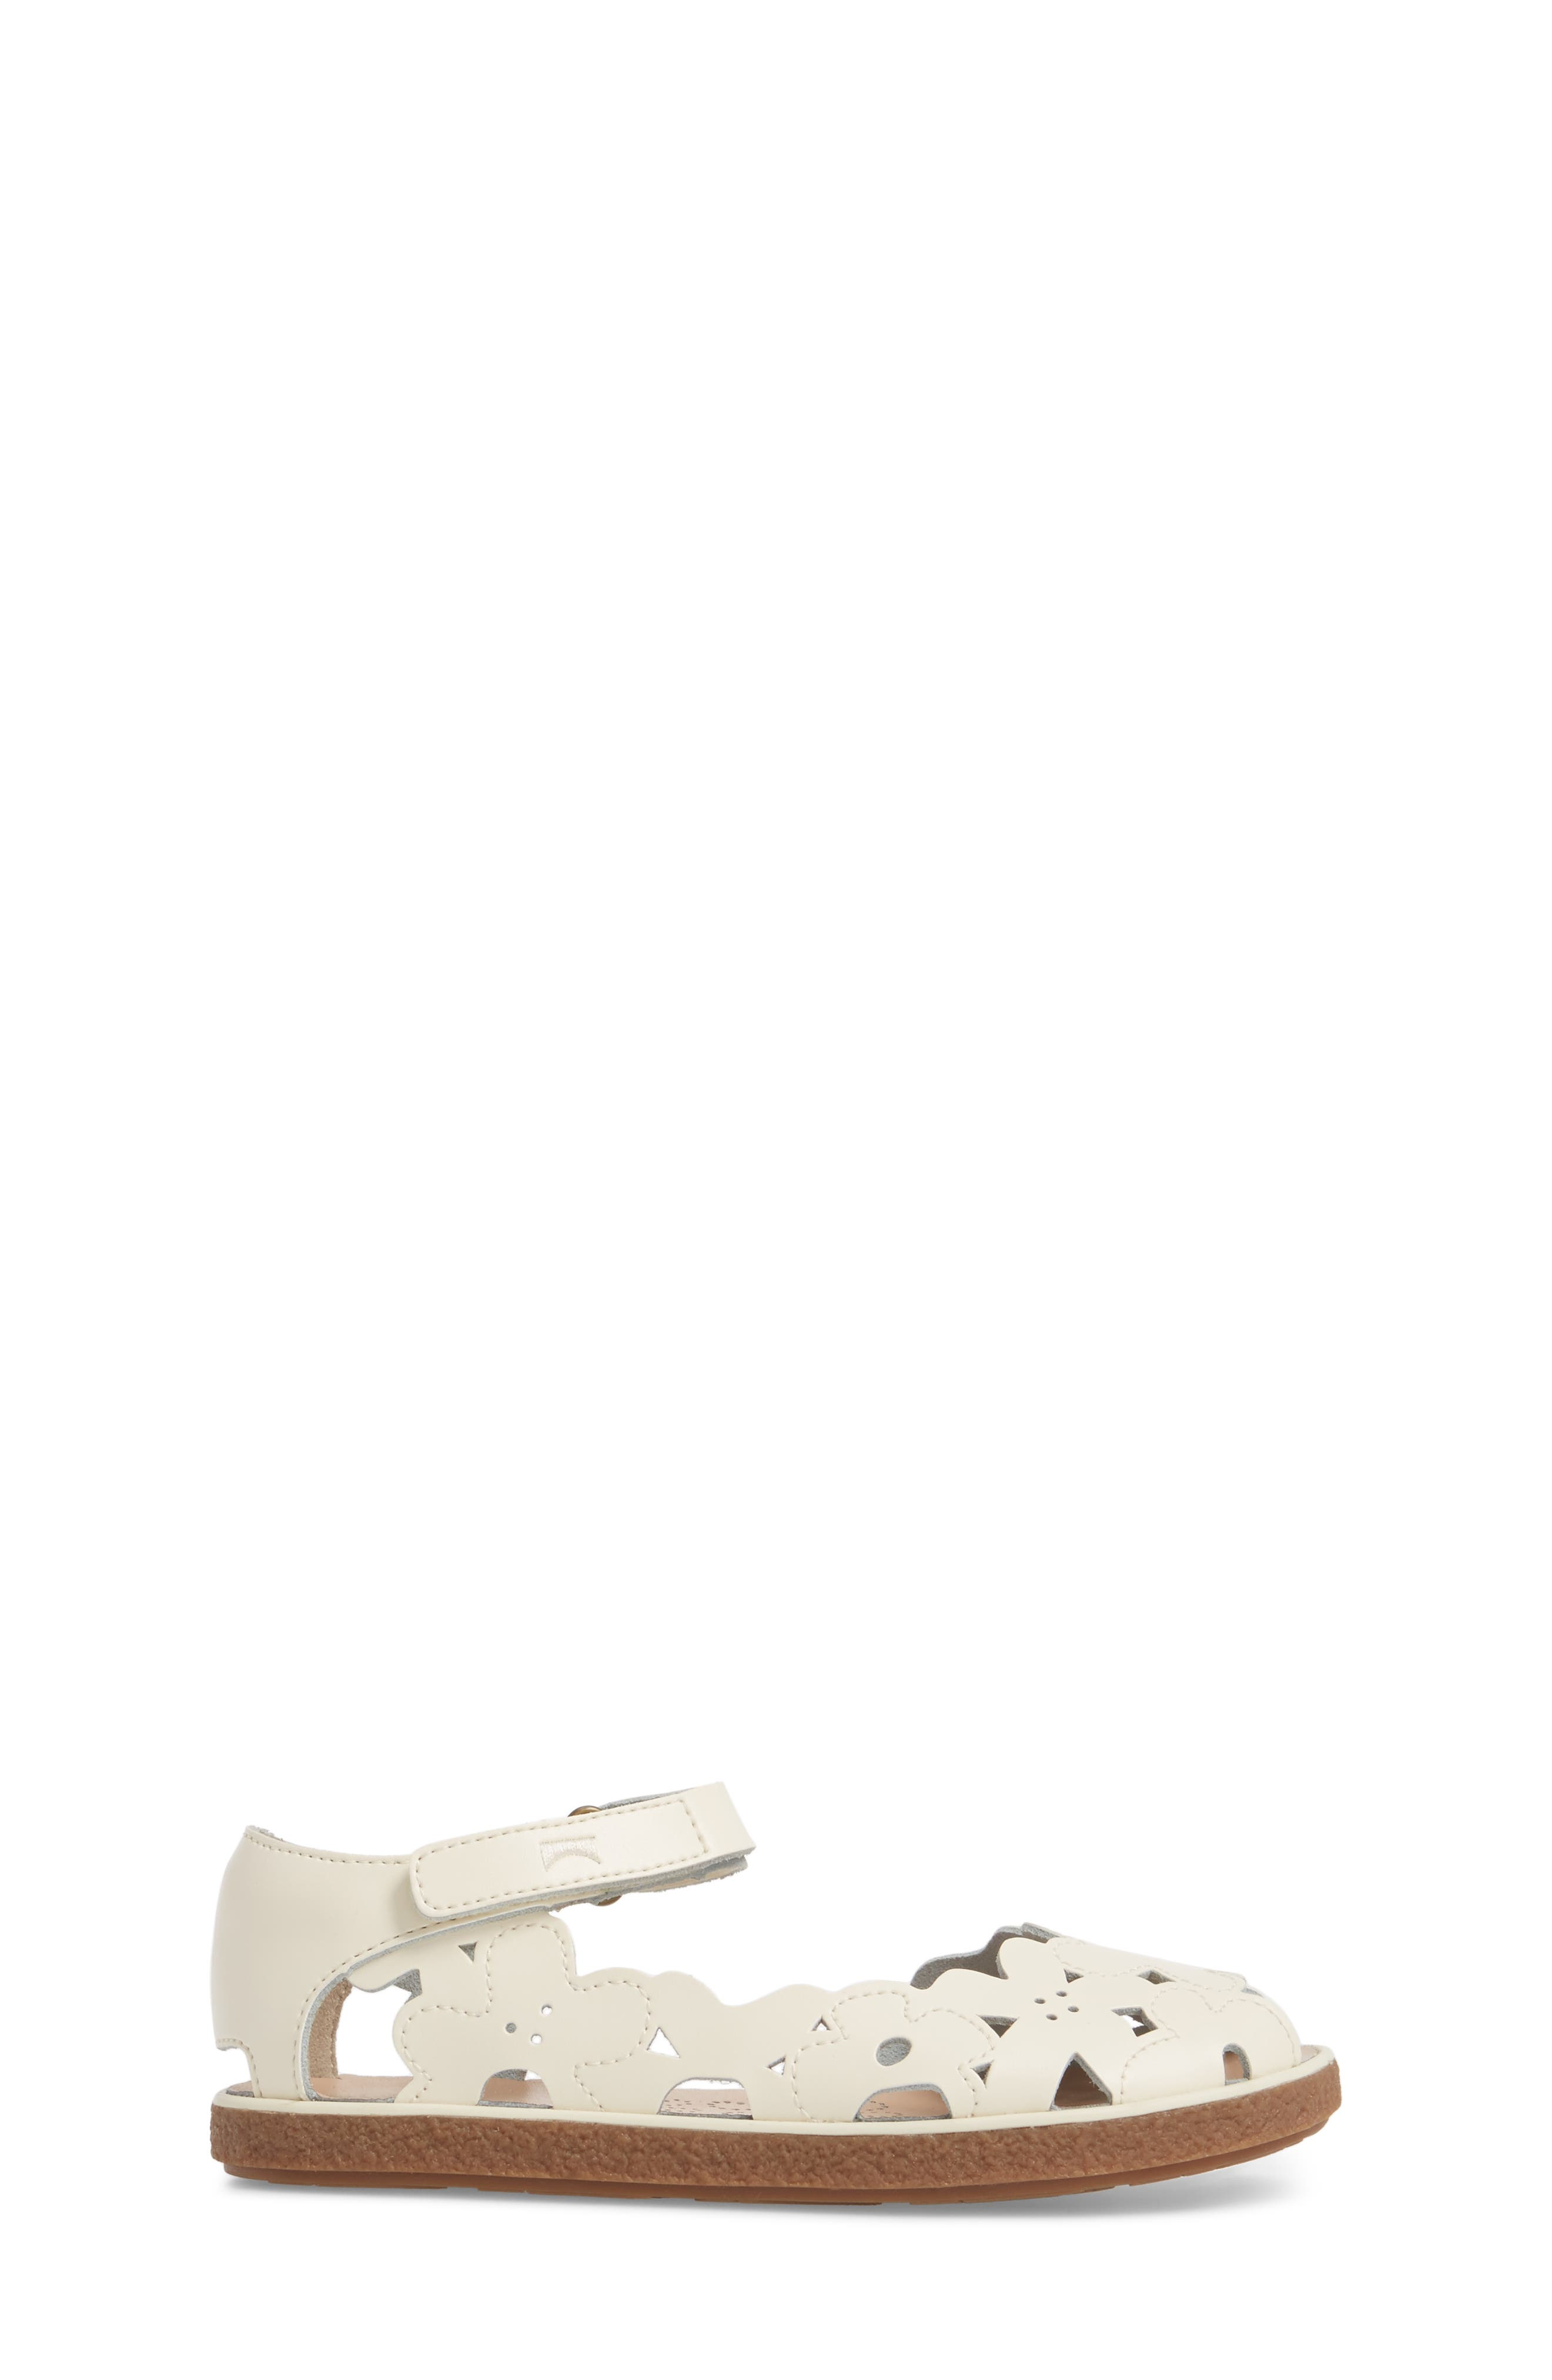 Twins Perforated Sandal,                             Alternate thumbnail 3, color,                             WHITE